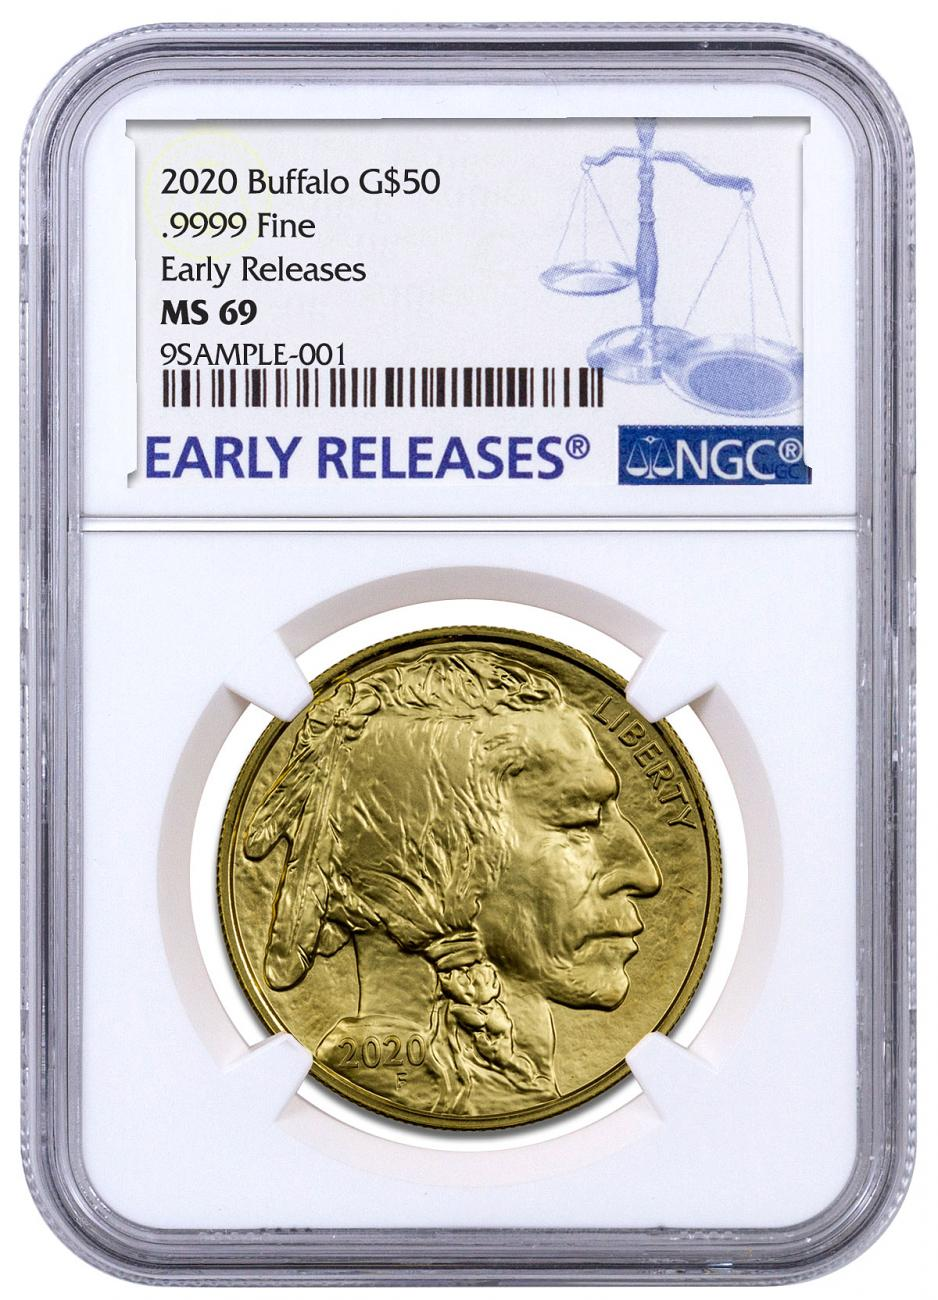 2020 1 oz Gold Buffalo $50 Coin NGC MS69 ER Blue Label